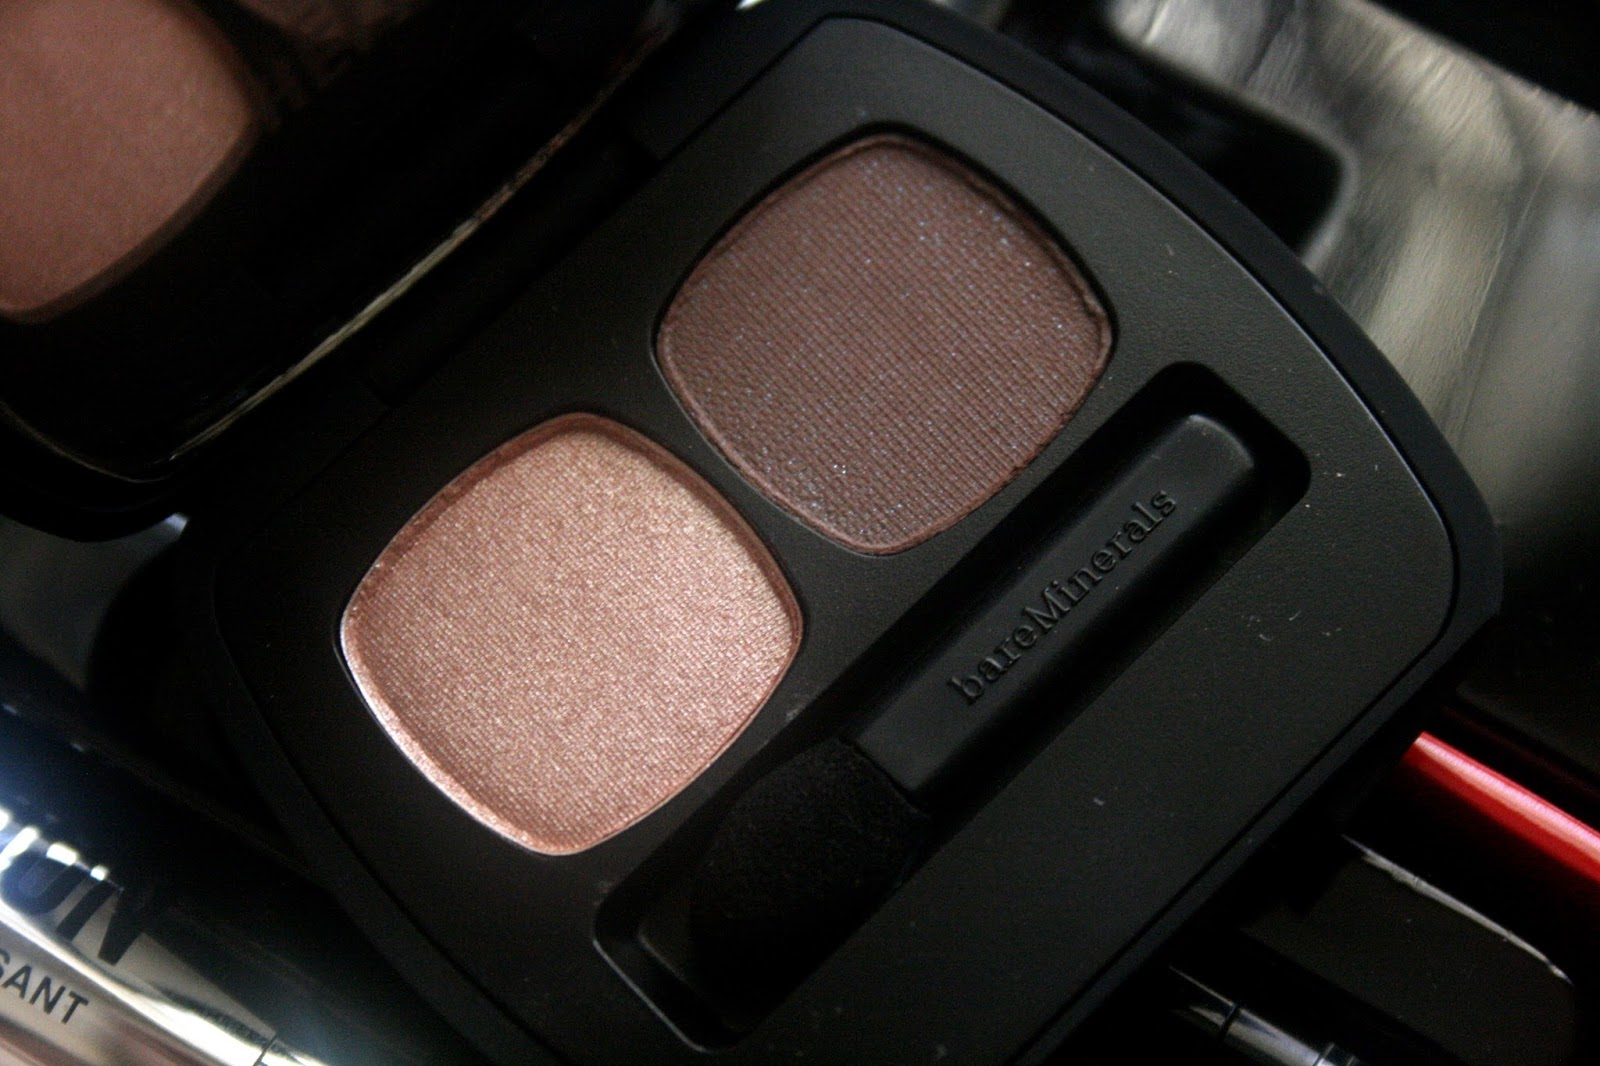 bare Minerlas main attraction 7-piece face collectionREADY® Eyeshadow 2.0 The Curtain Call in Matinee and Opening Night